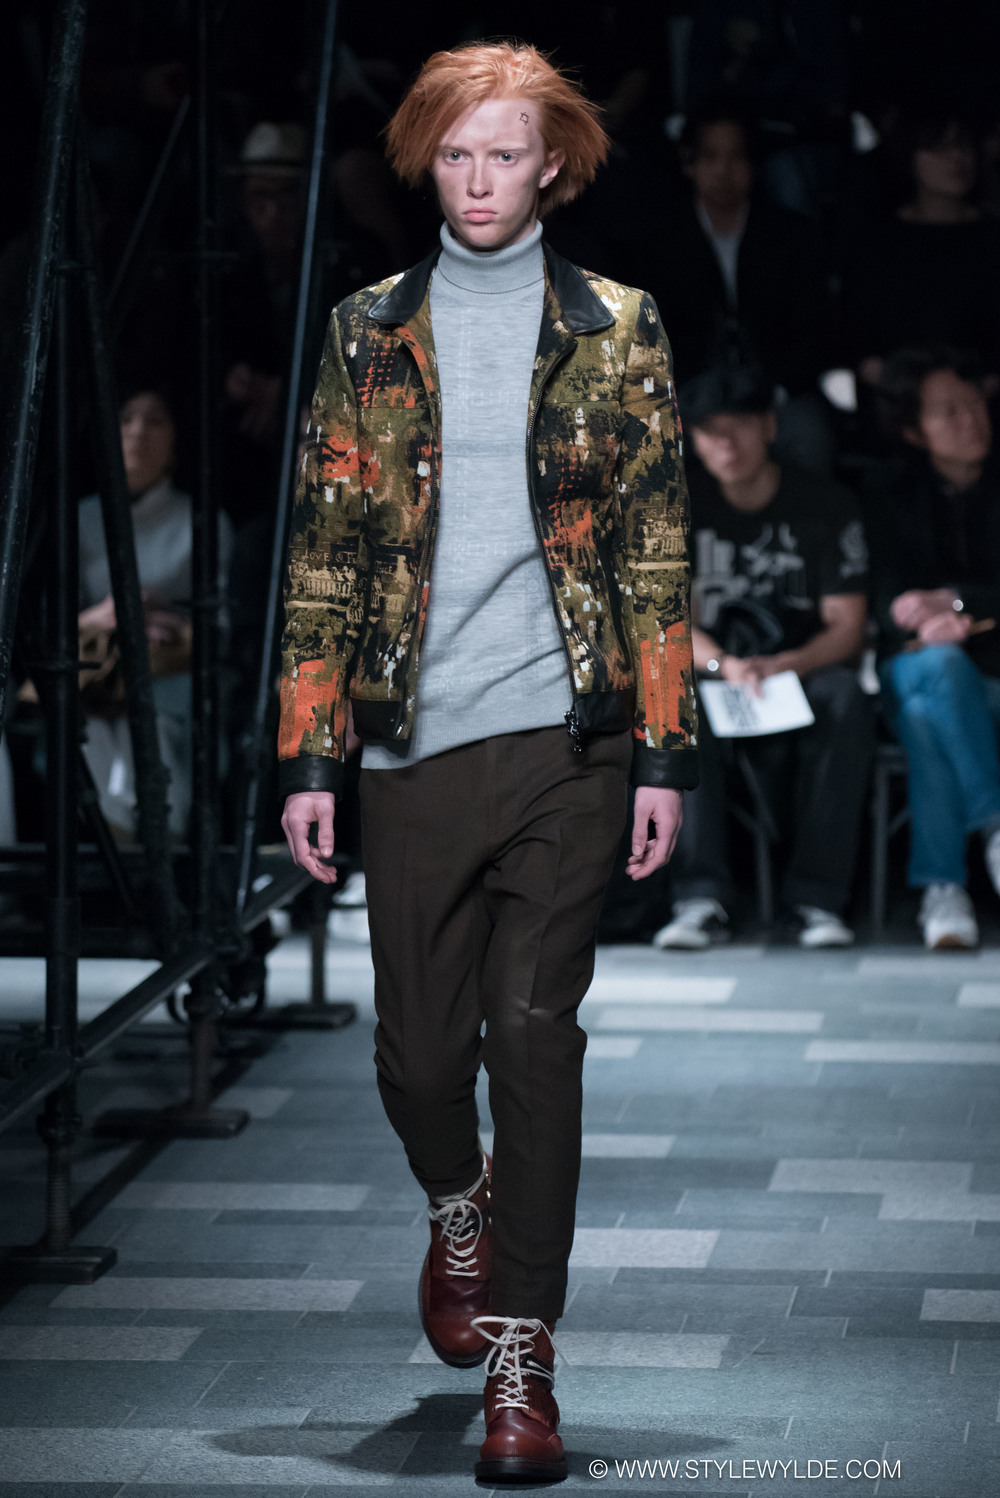 stylewylde_5351_pour_les_hommes_fw_2016-21.jpg